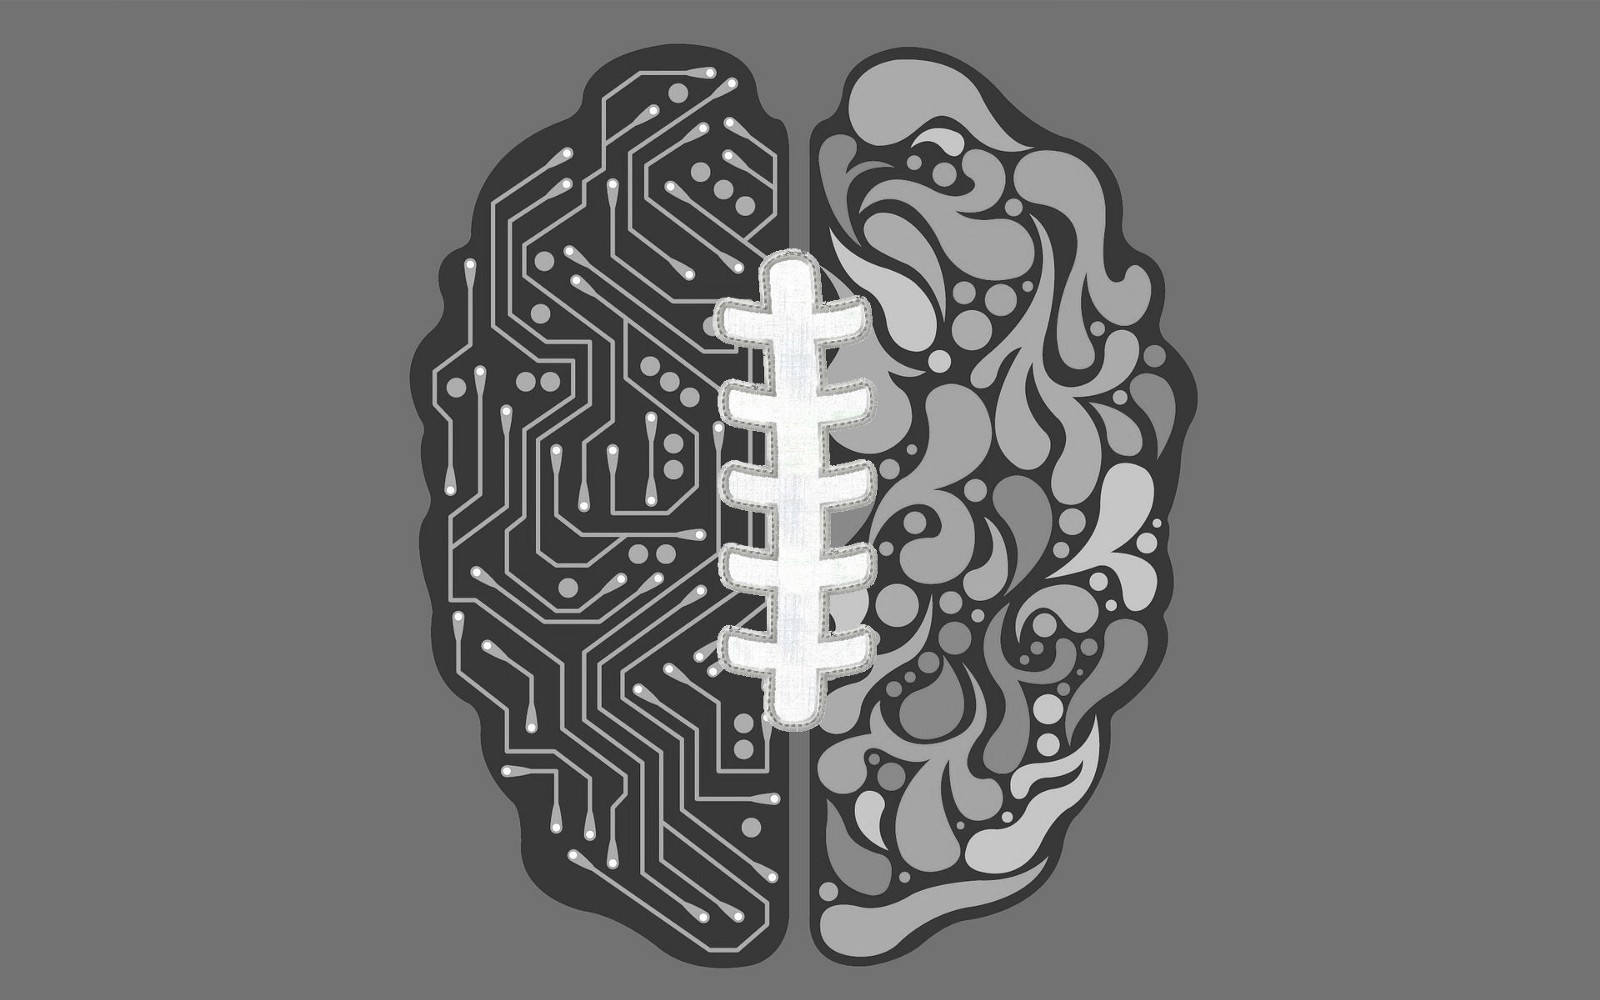 5b5ede916d7 PART 1  Dominate your 2017 Fantasy Football League with Artificial  Intelligence and Machine Learning